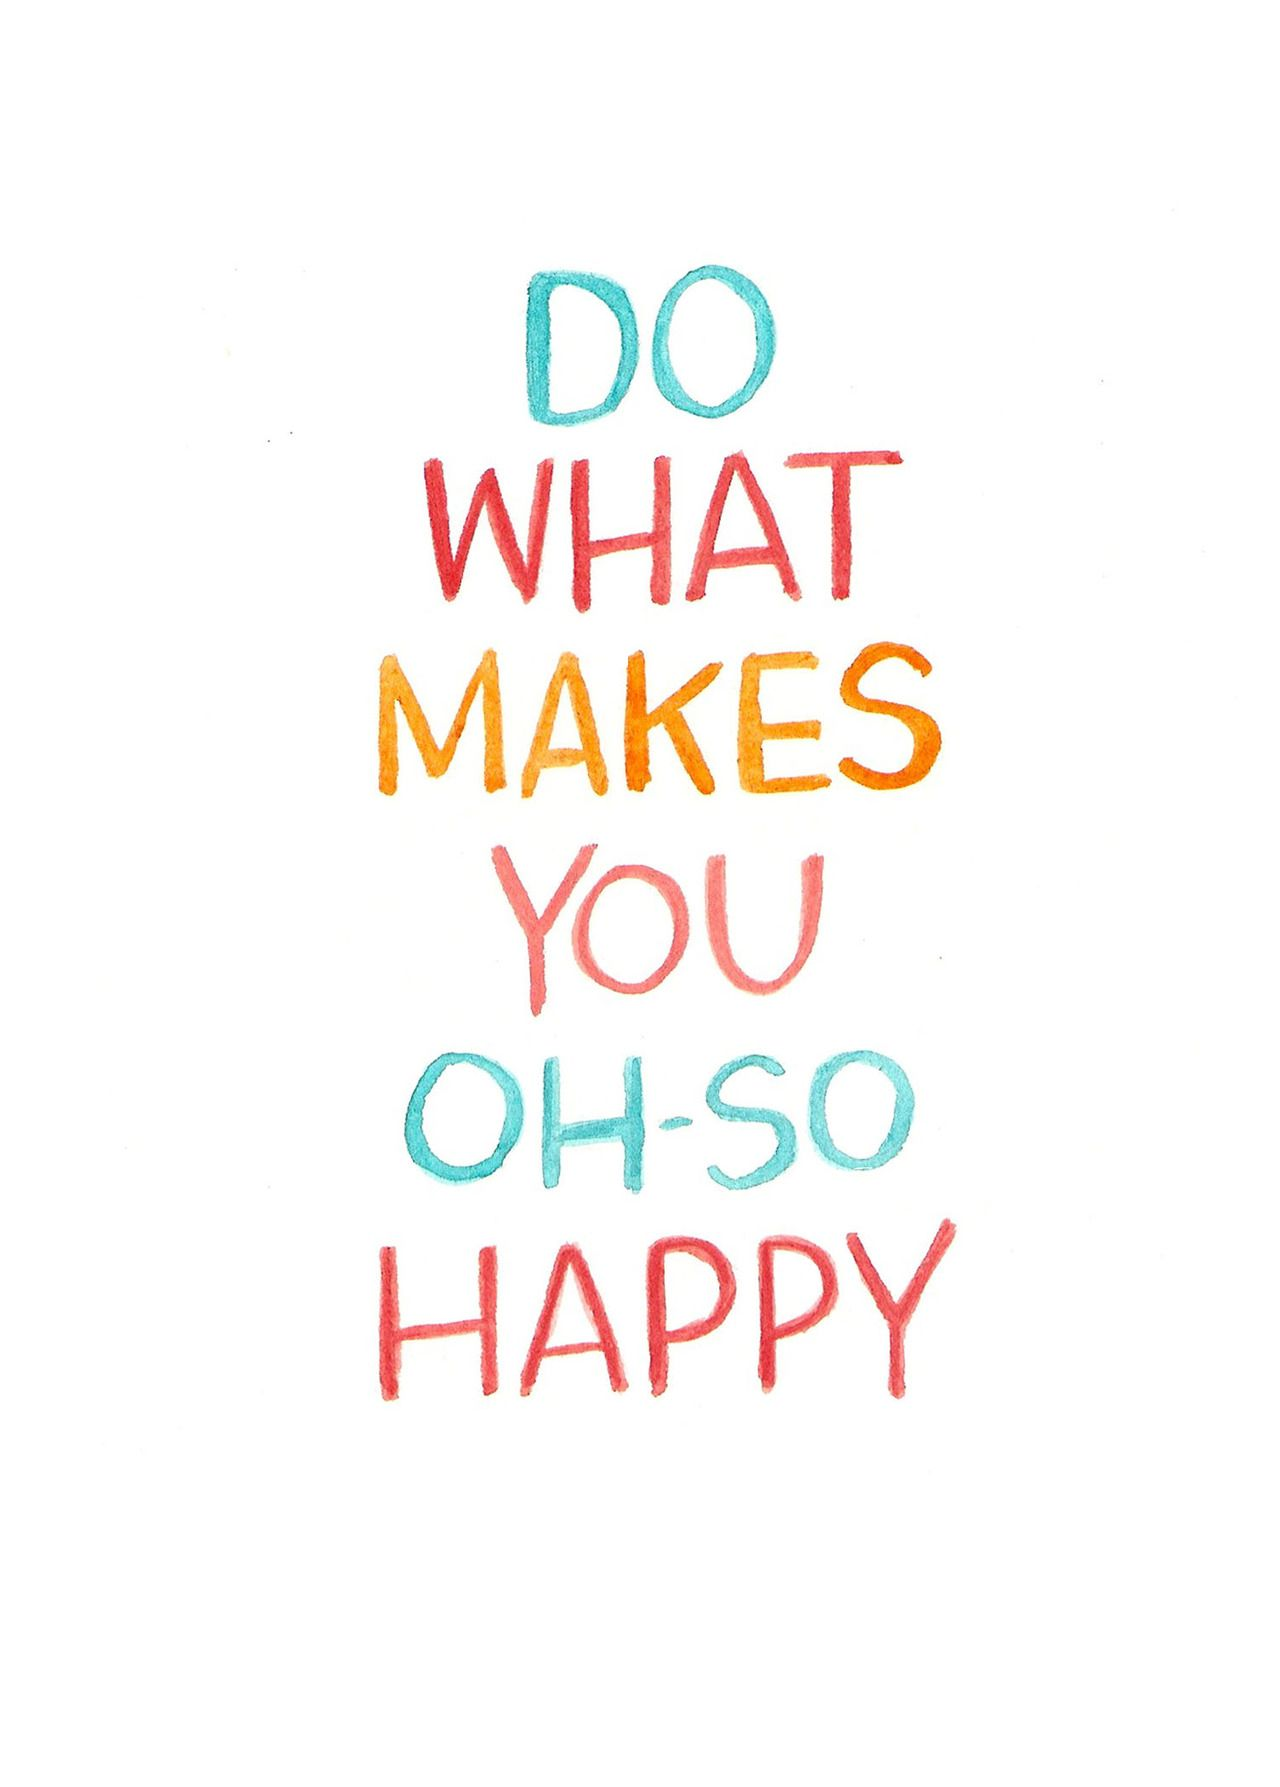 Happy Positive Quotes What Makes You Ohso Happy Via Theglitterguide  Joy